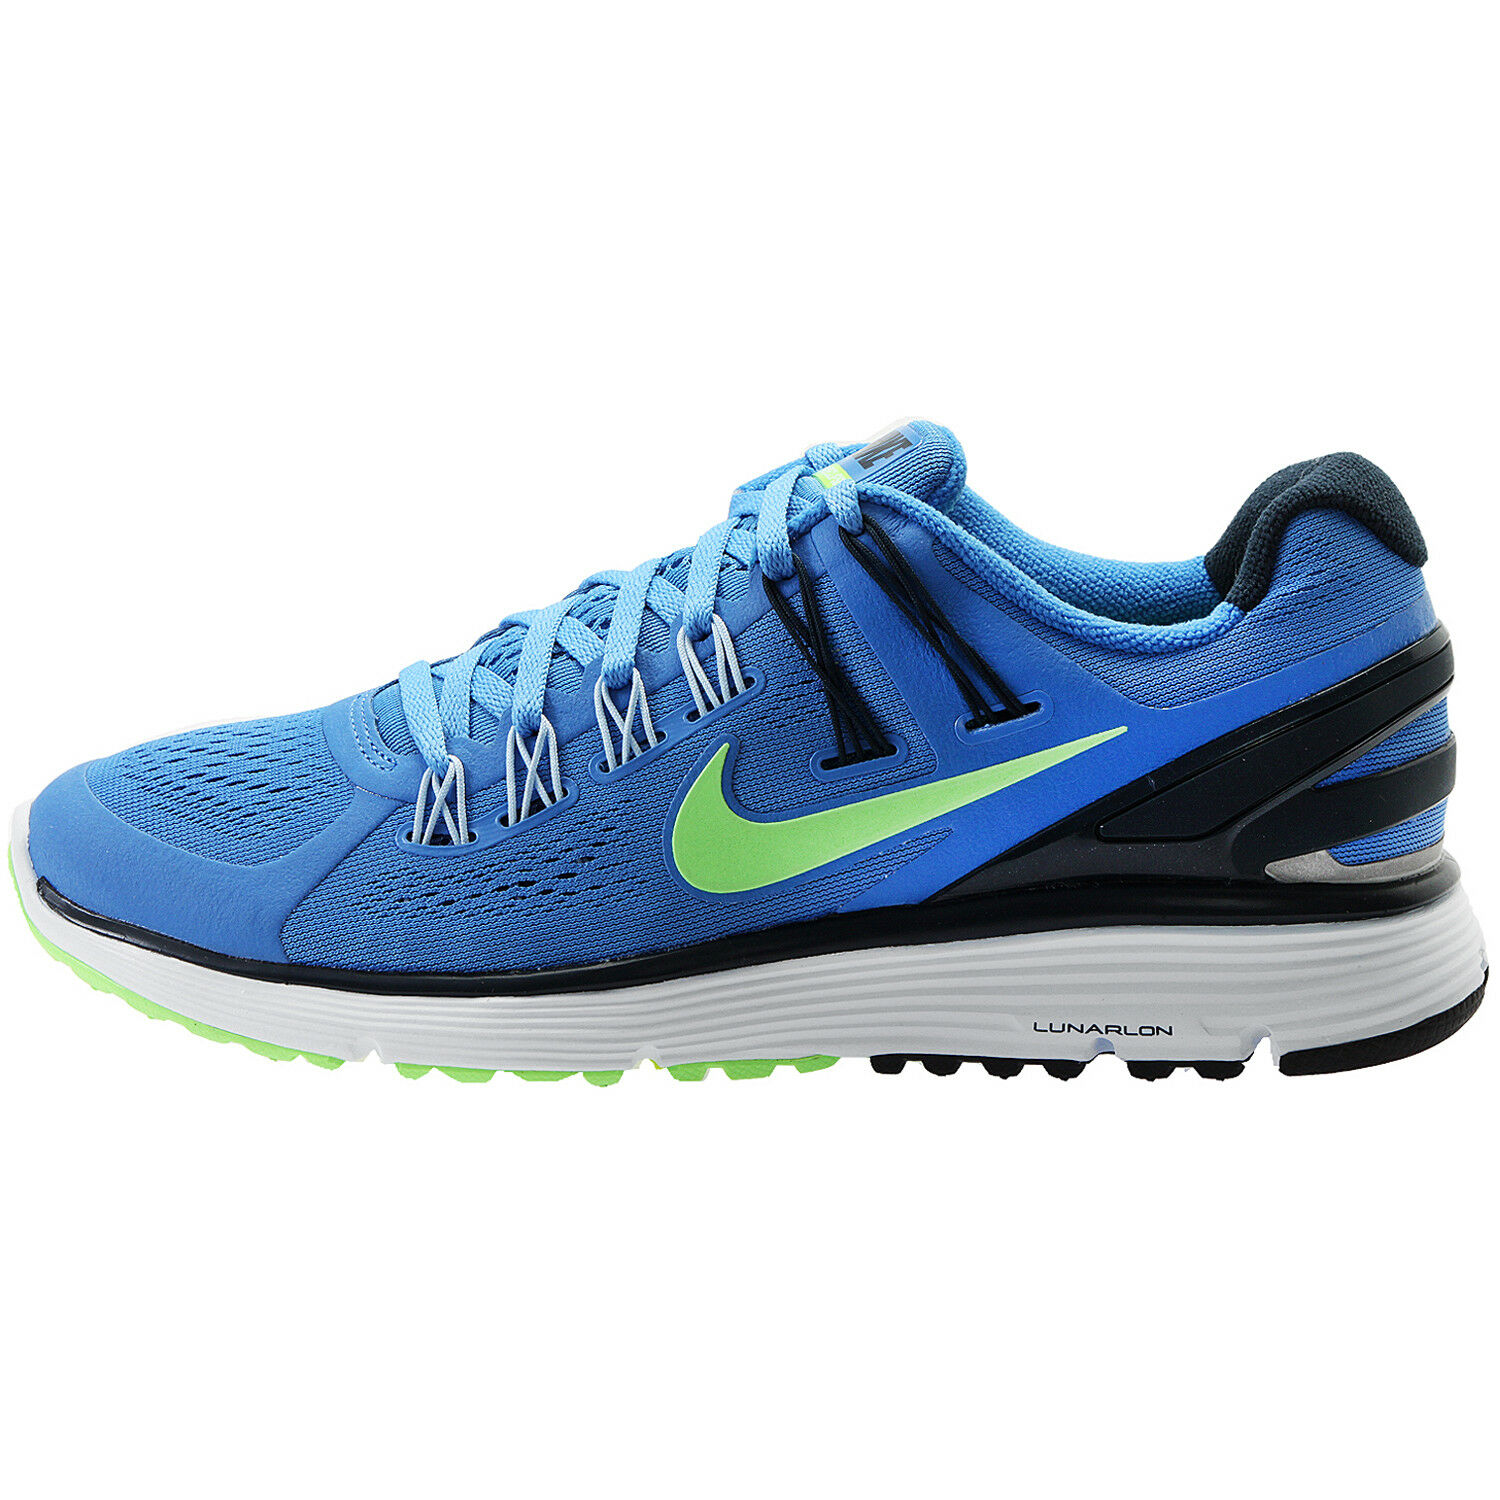 Nike Women's Lunareclipse+3 NEW NEW NEW AUTHENTIC bluee Green Navy Silver 555398-400 SZ 6 020ff0